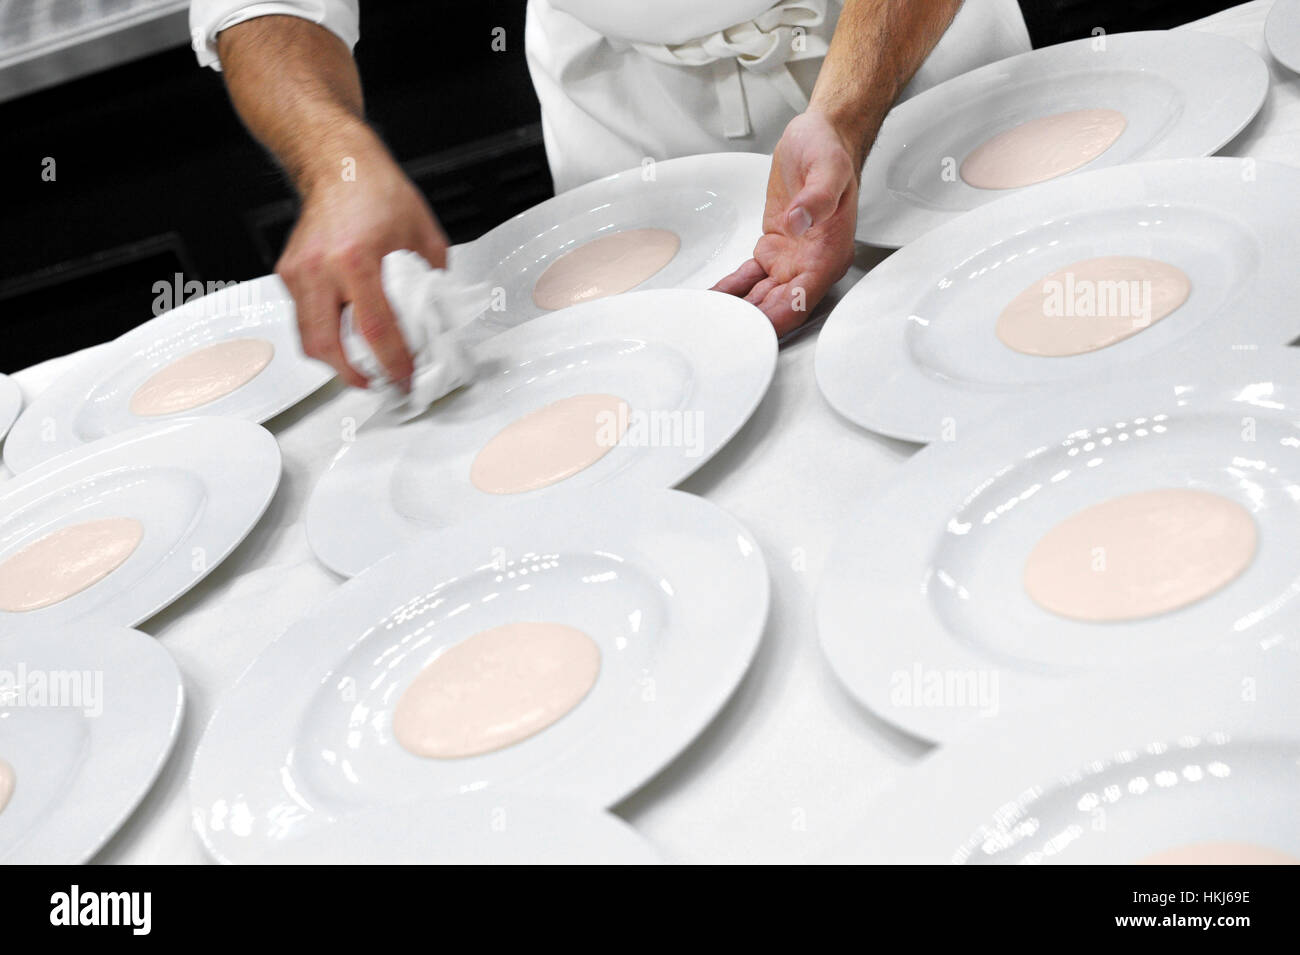 Crop view of incognito waiter in white apron holding napkin while wiping white plates with pink centre over table - Stock Image